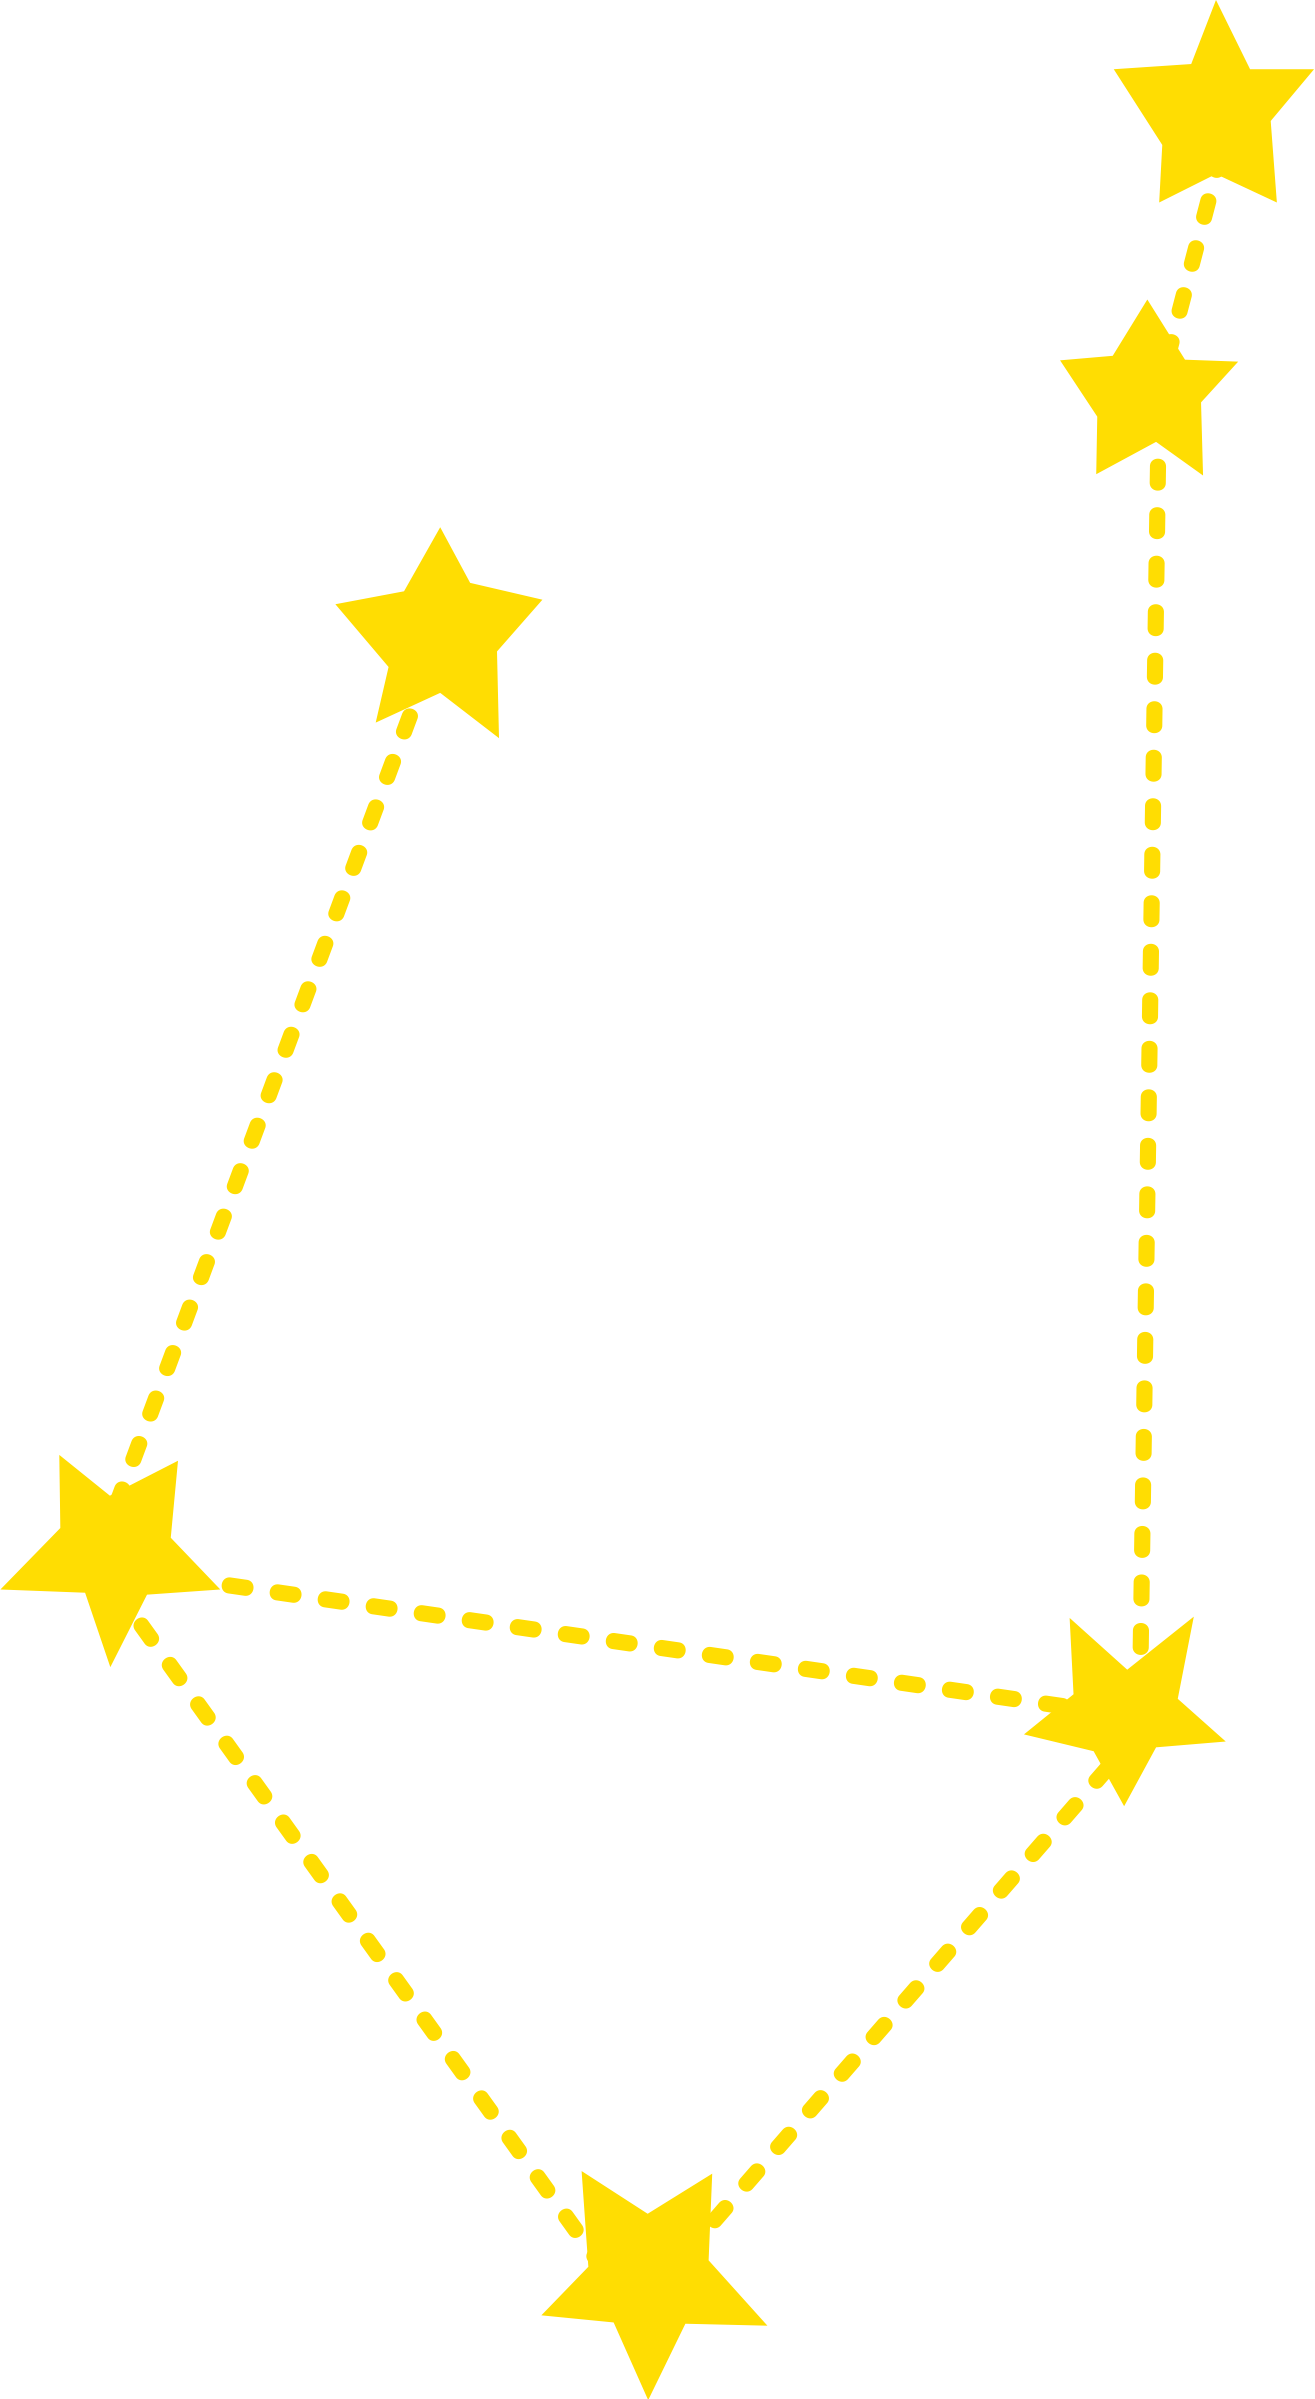 Star constellation clipart banner free stock Clipart - Constellation of Scorpio banner free stock